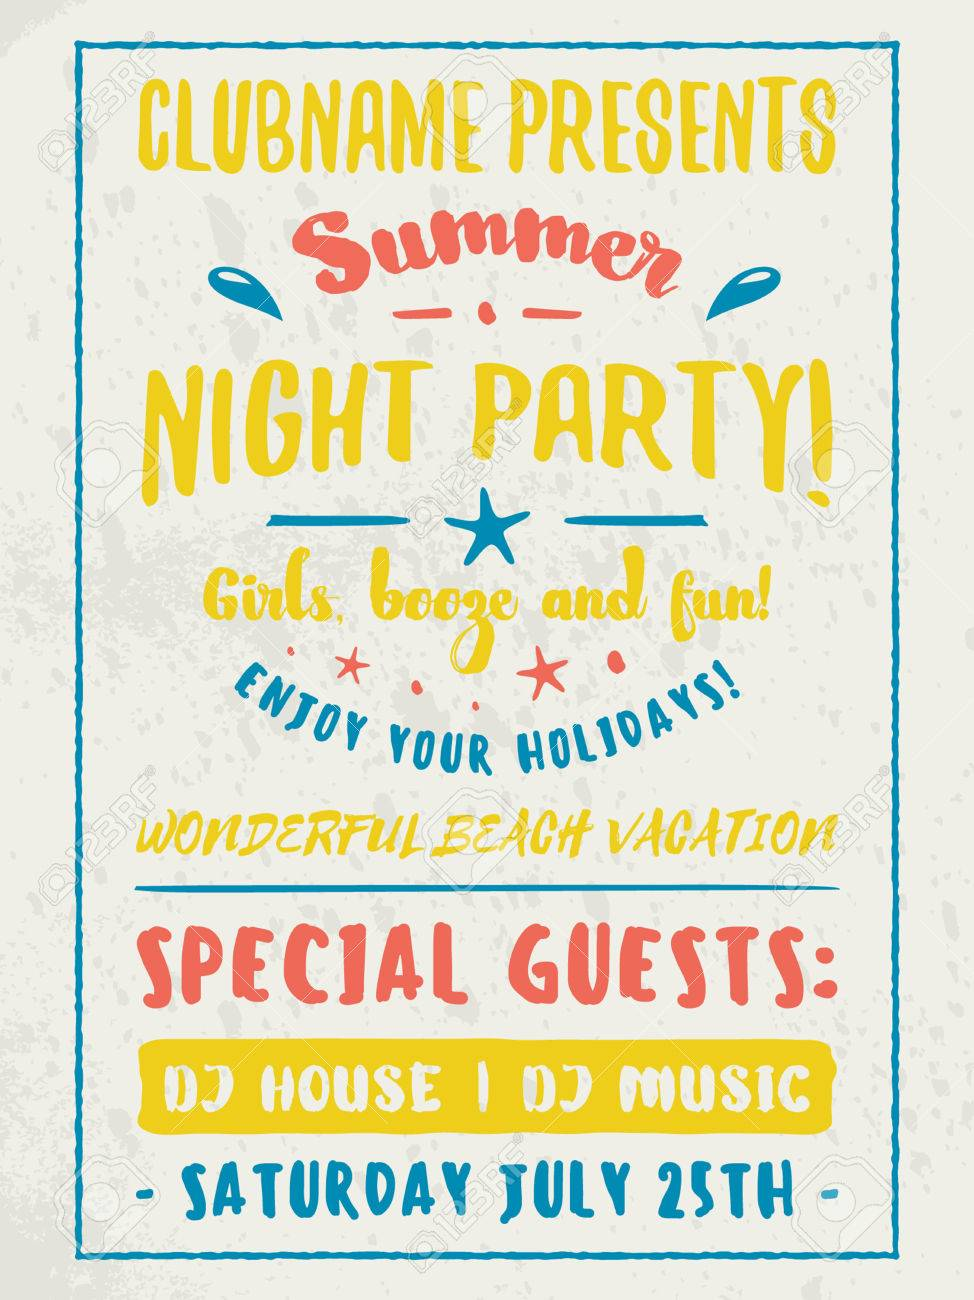 beach party flyer or poster night club event summer night party vector flyer